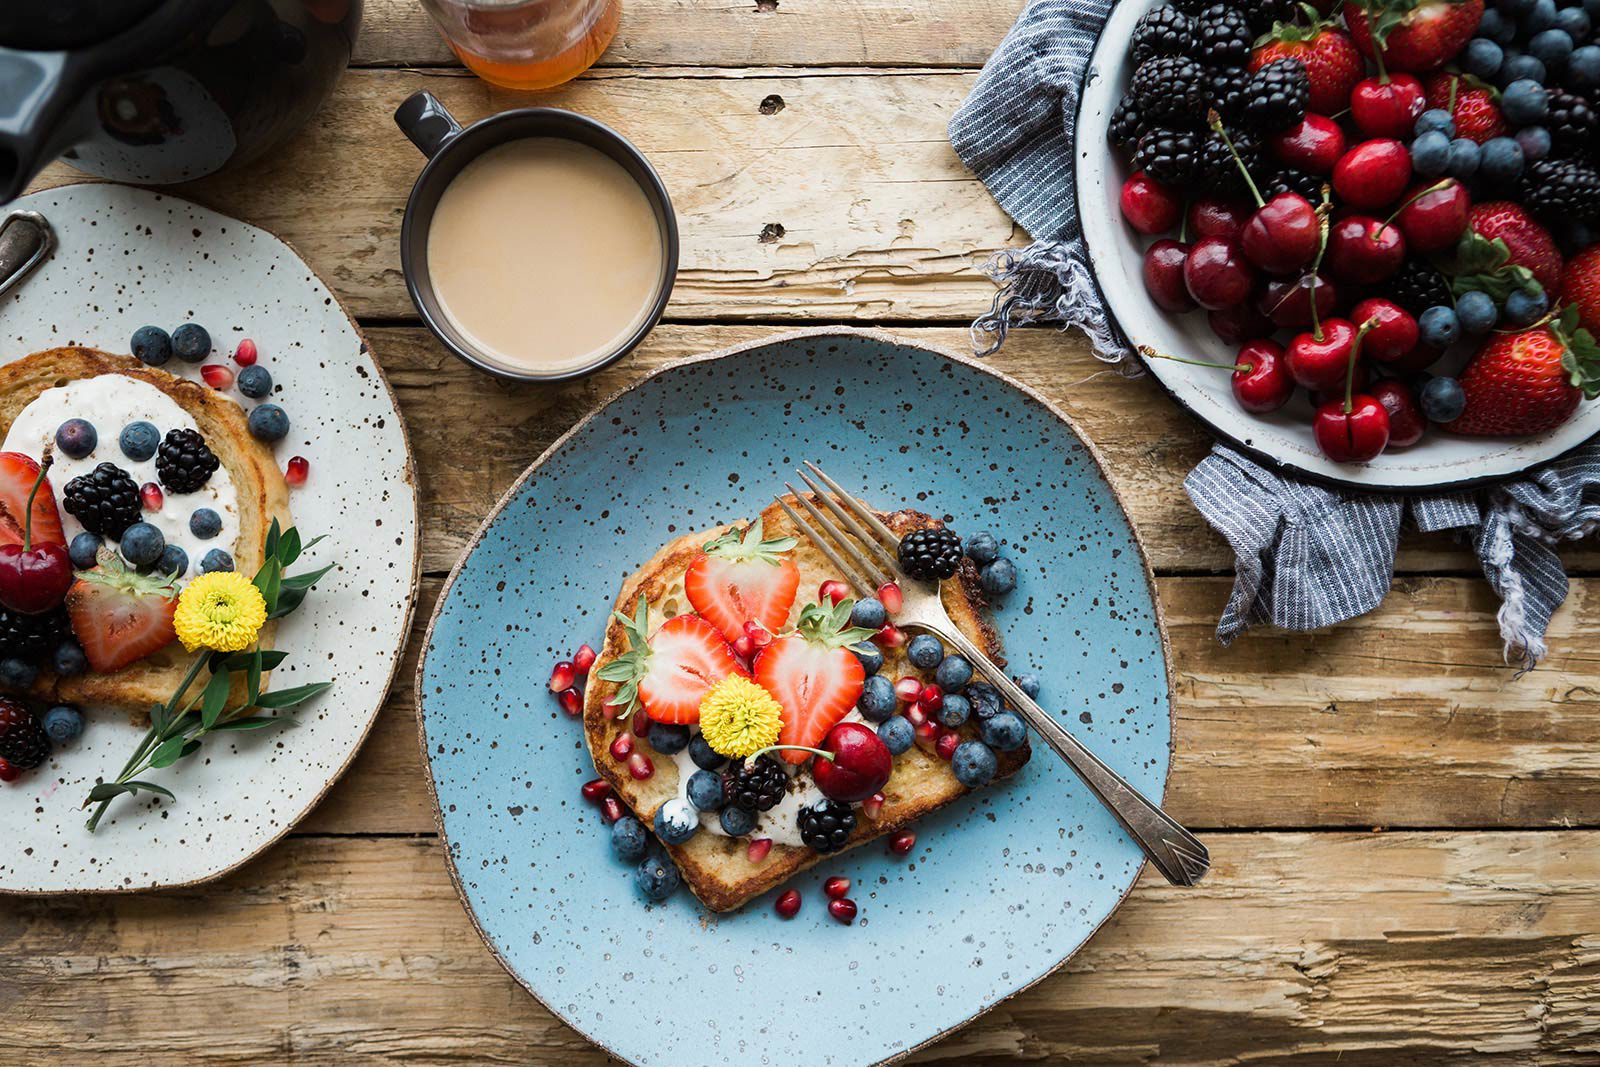 Toast with strawberries, blueberries, blackberries, and pomegranate seeds on plate next to bowl of berries, toast and coffee.